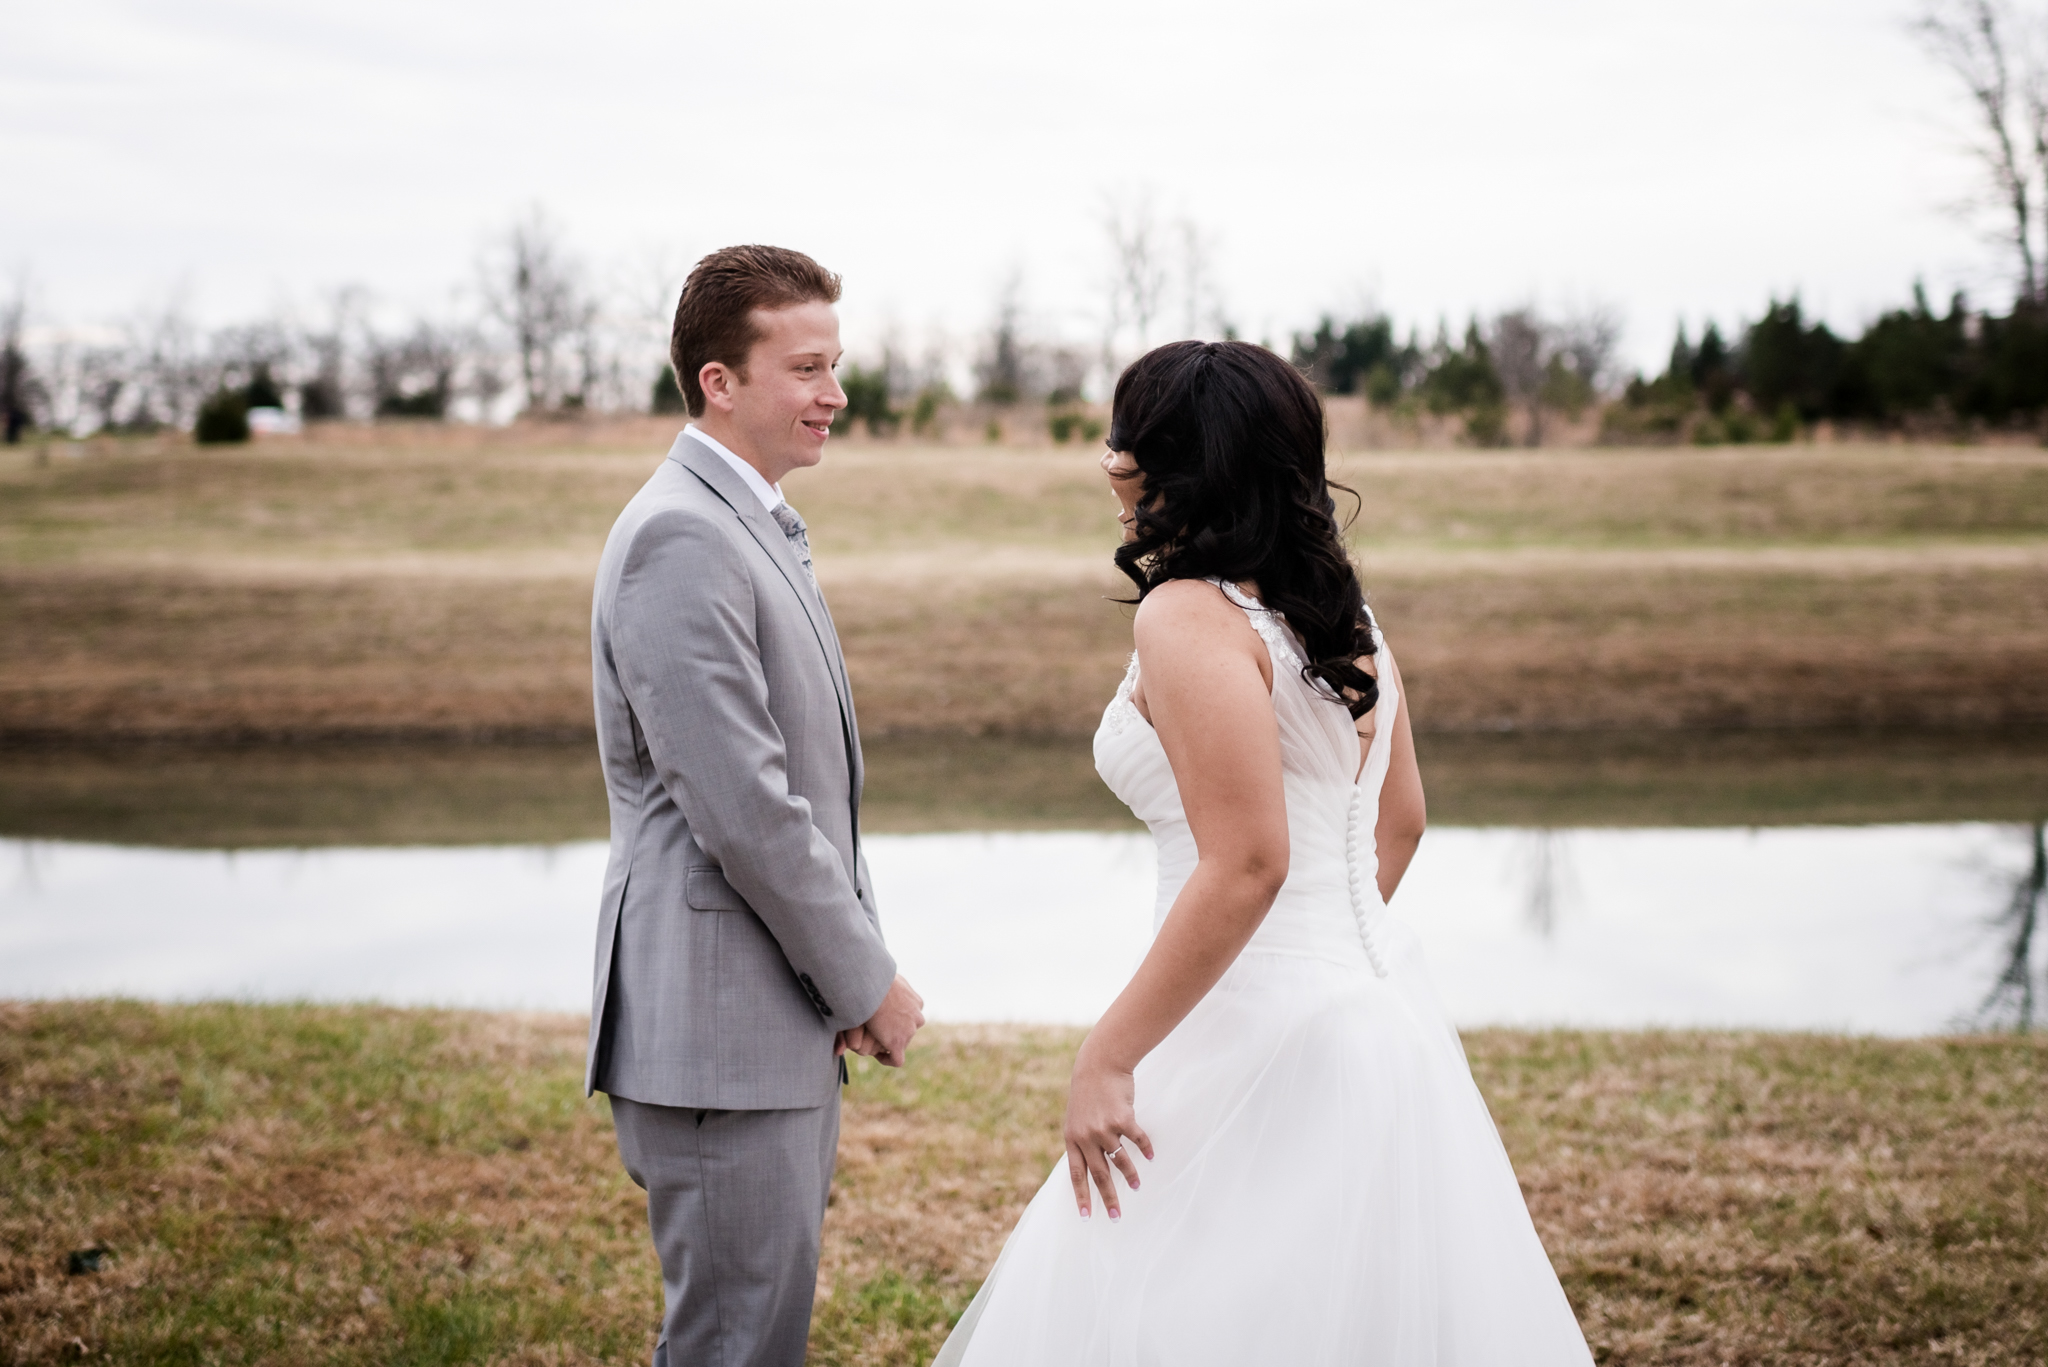 gibsonville-wedding-photography-006.jpg